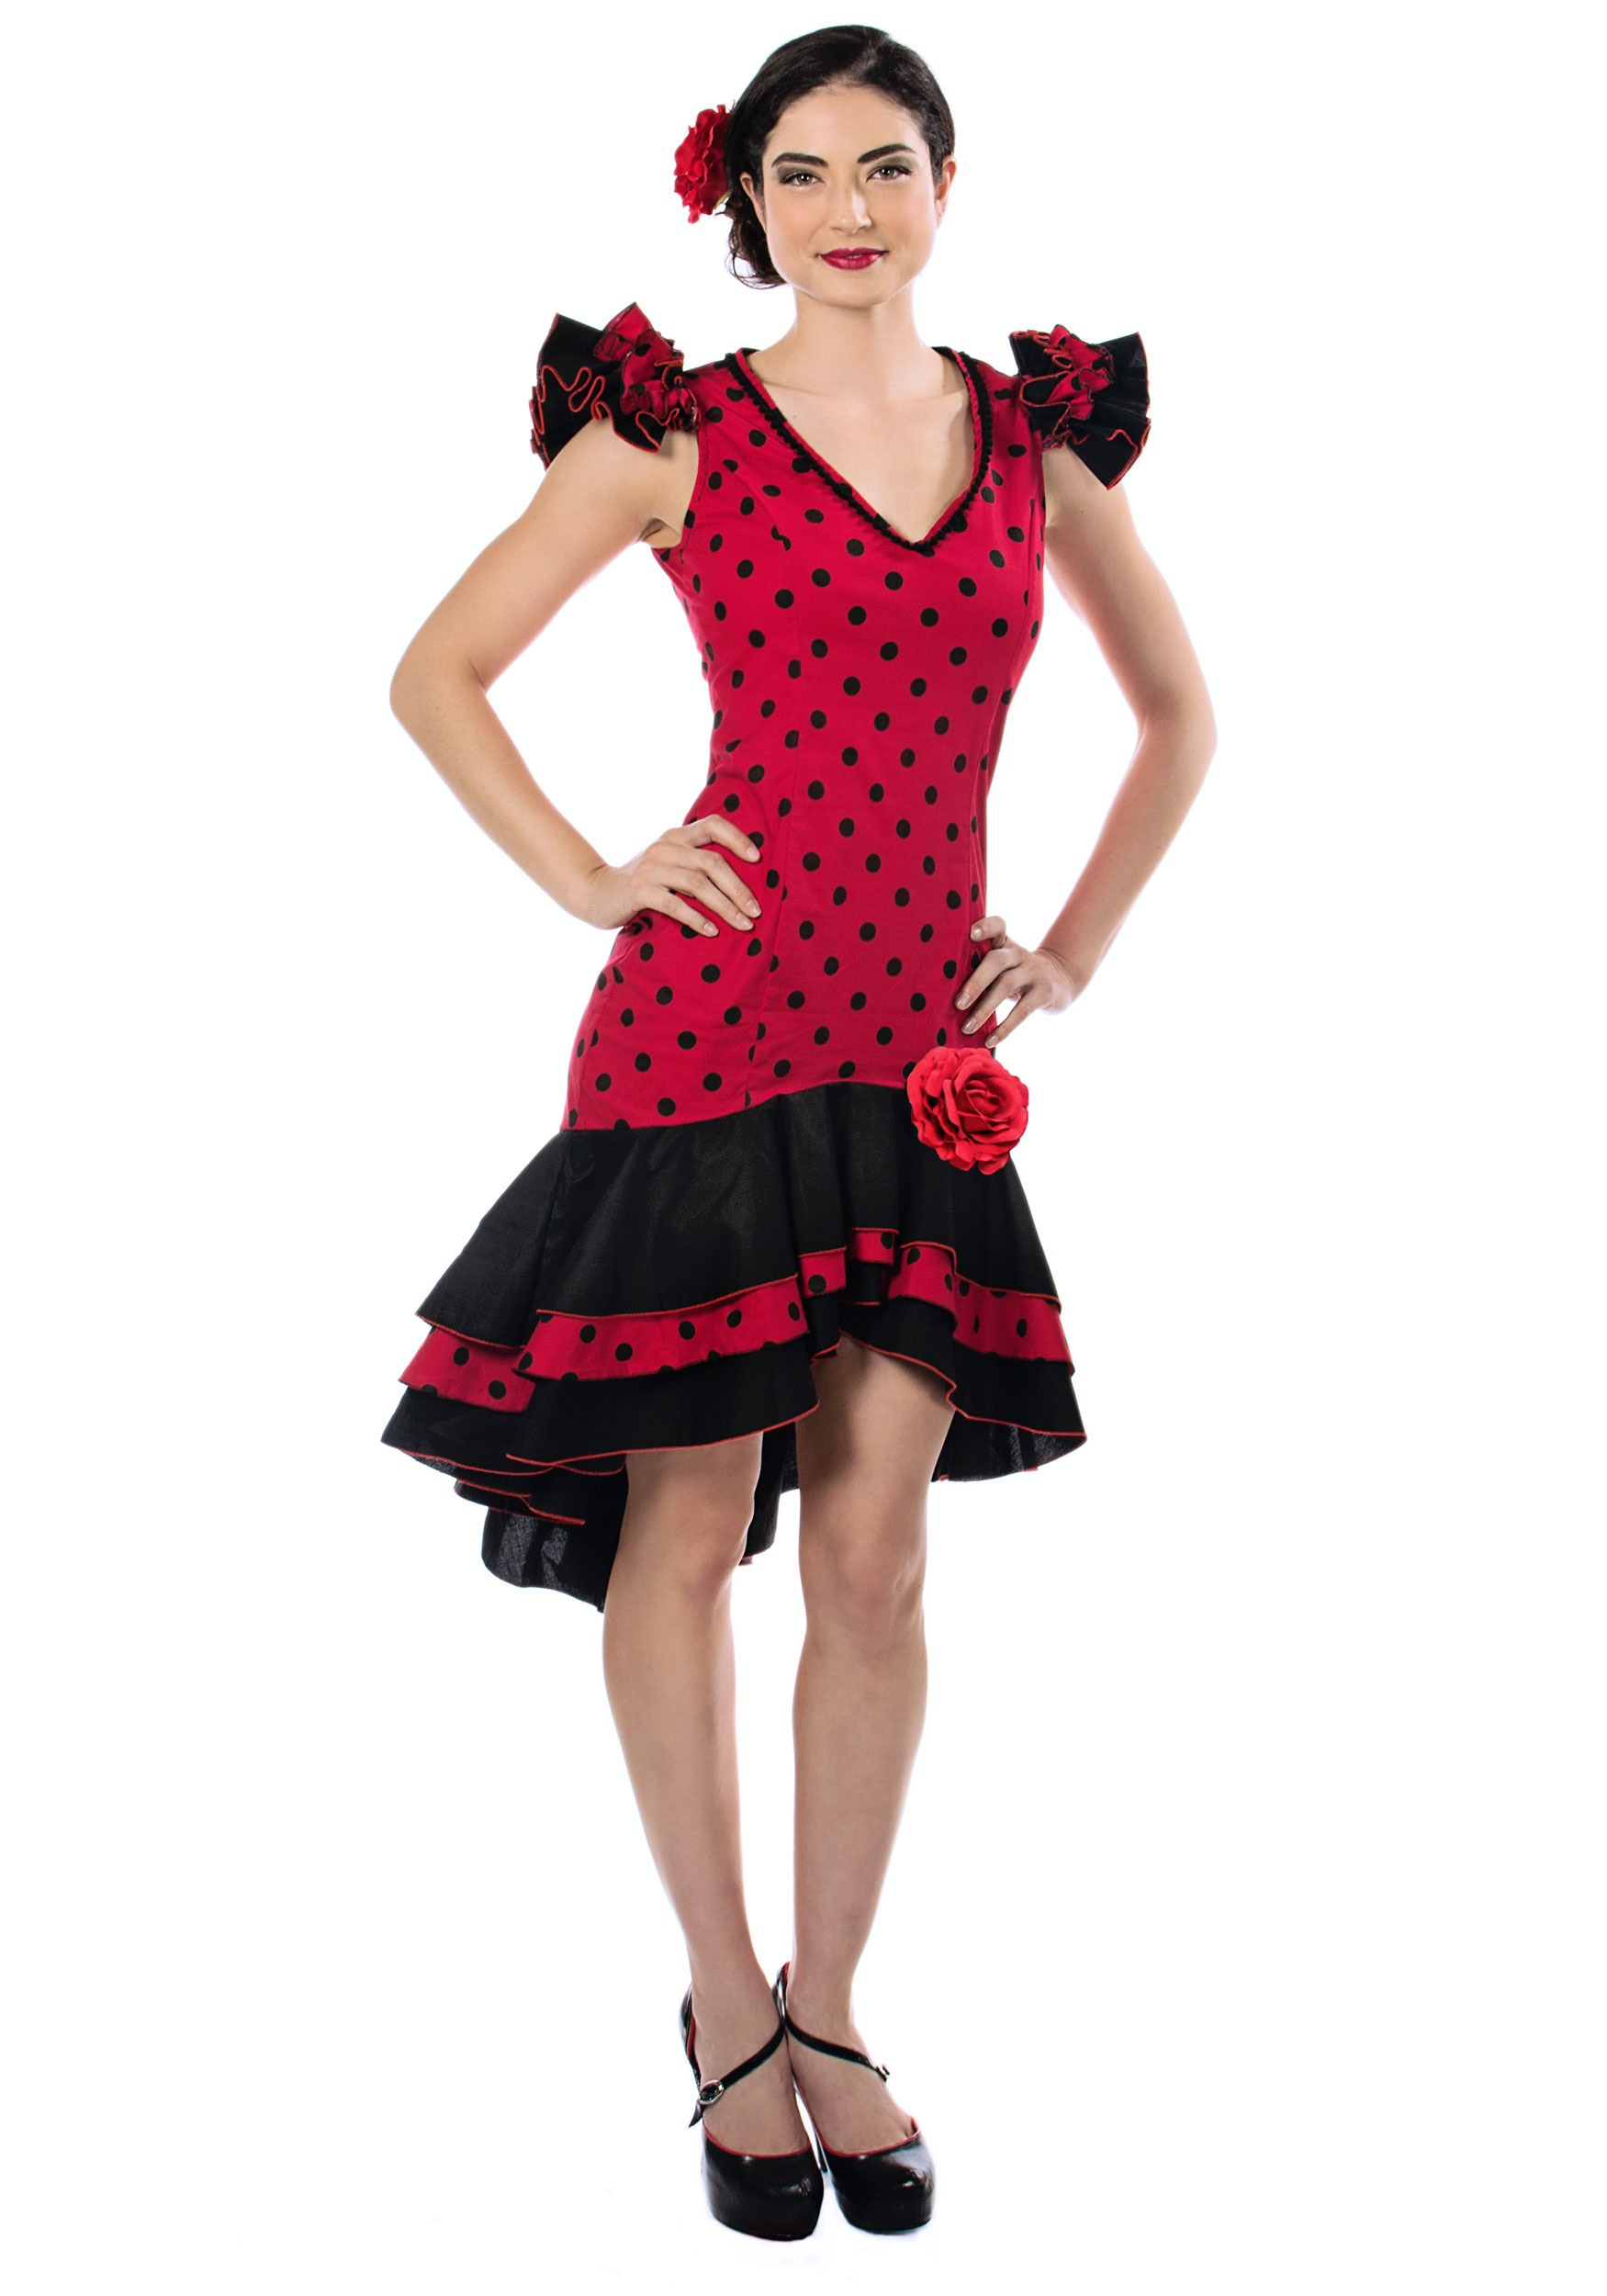 99d2d762c2c4 womens-spanish-dancer-costume.jpg